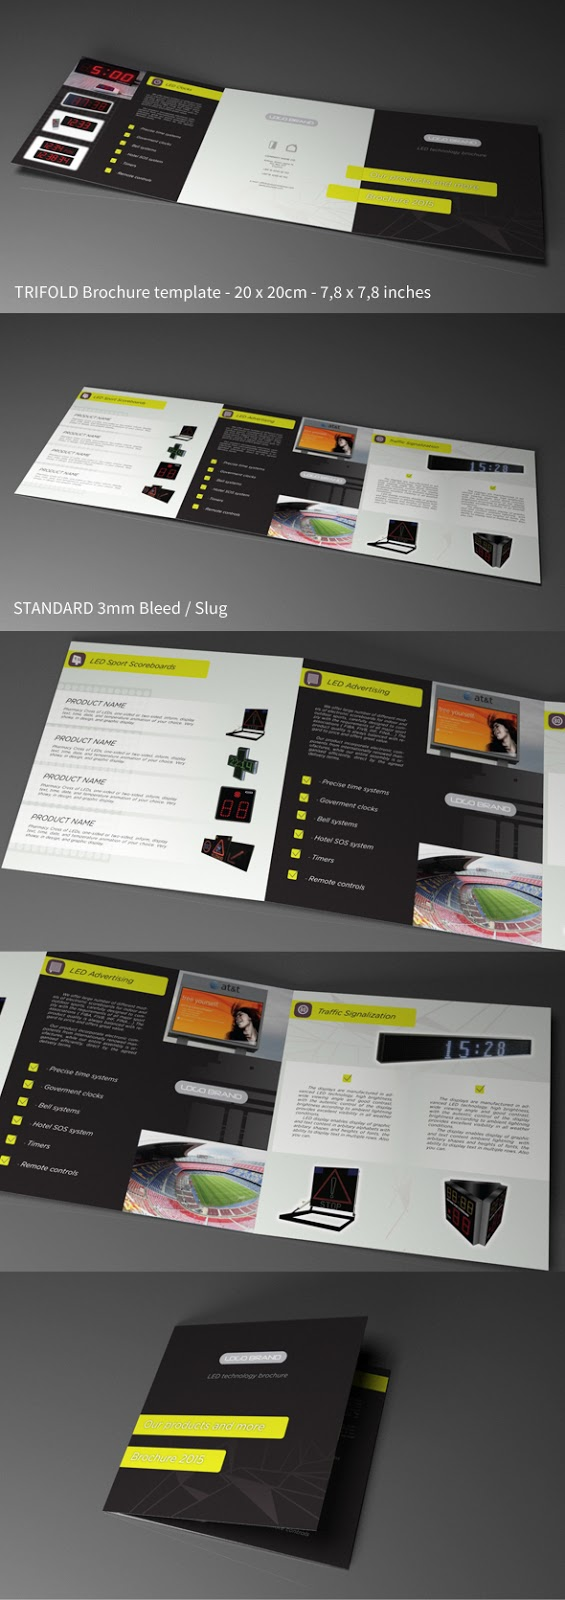 adobe indesign brochure templates free - indesign templates indesign templates